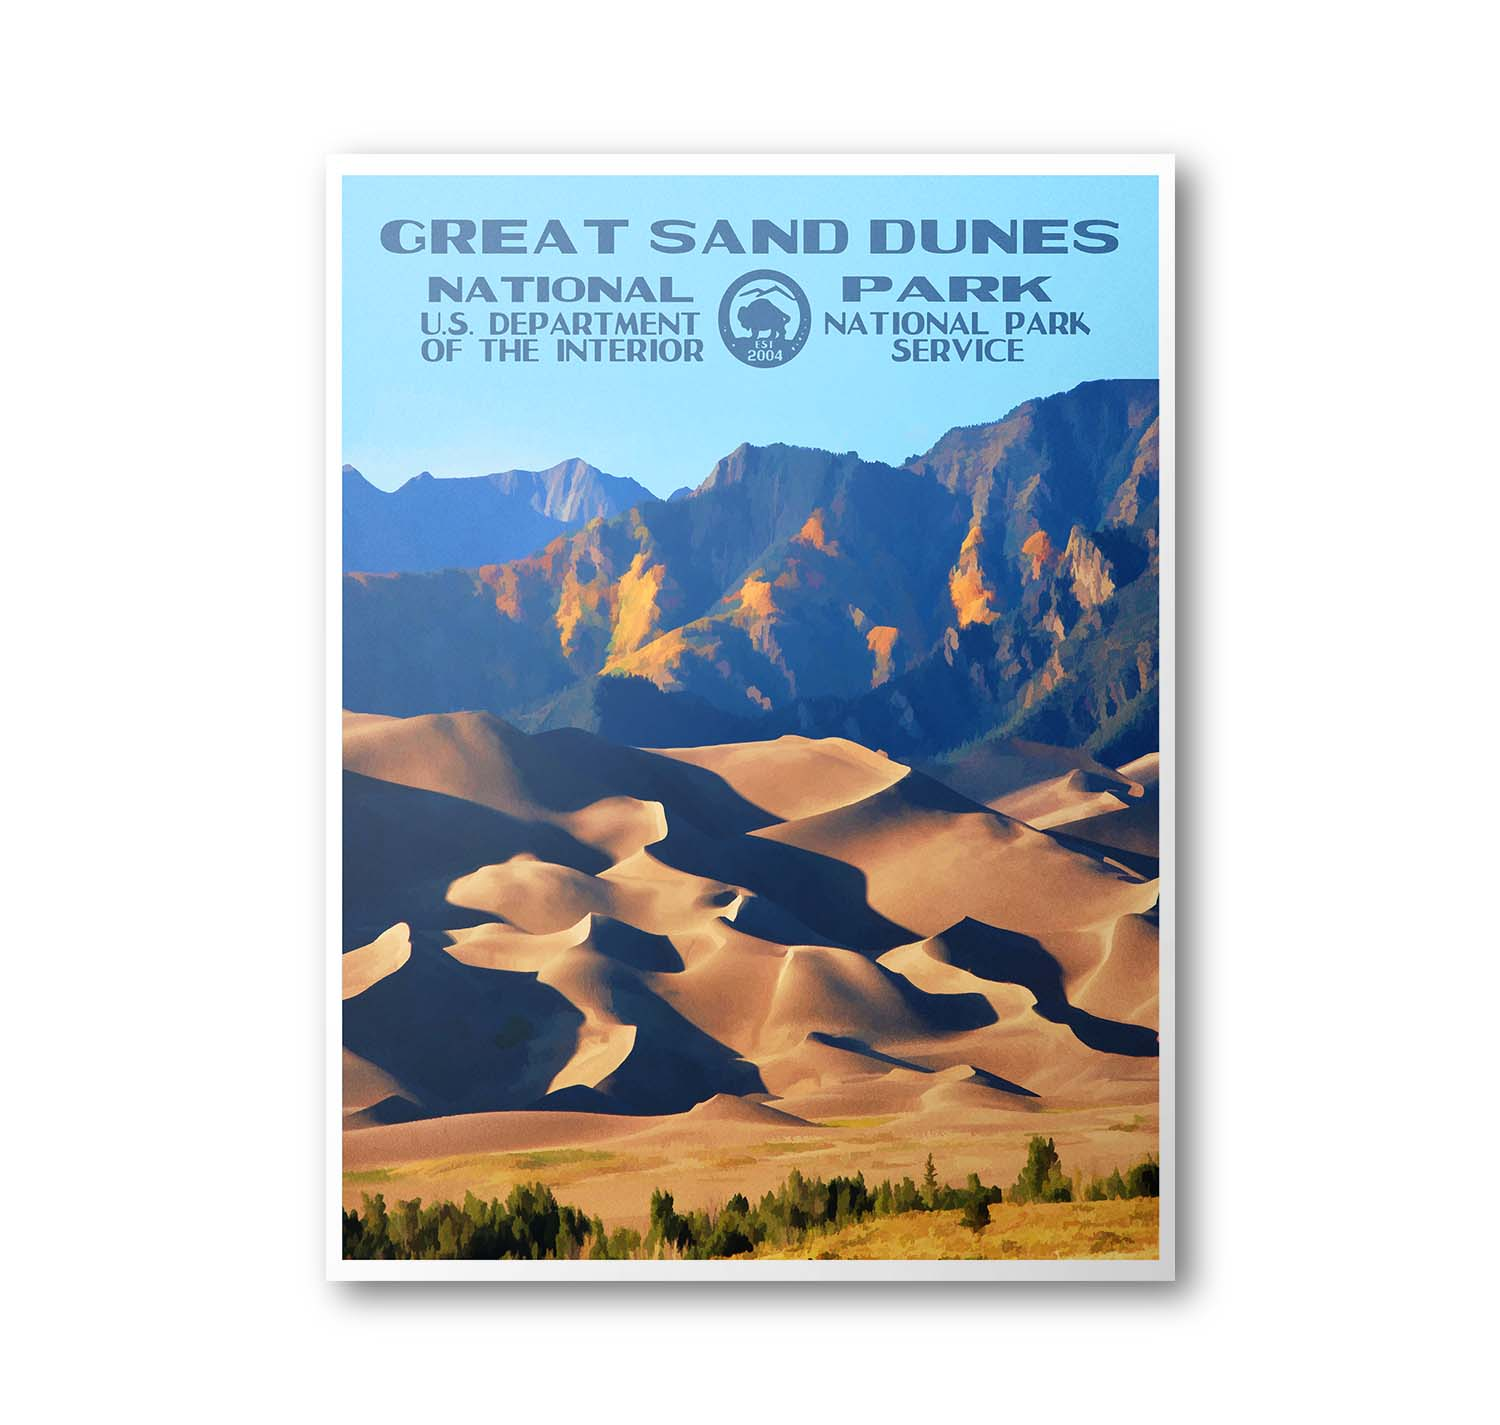 VIDEO: The Great Sand Dunes {& Contest Winners!}